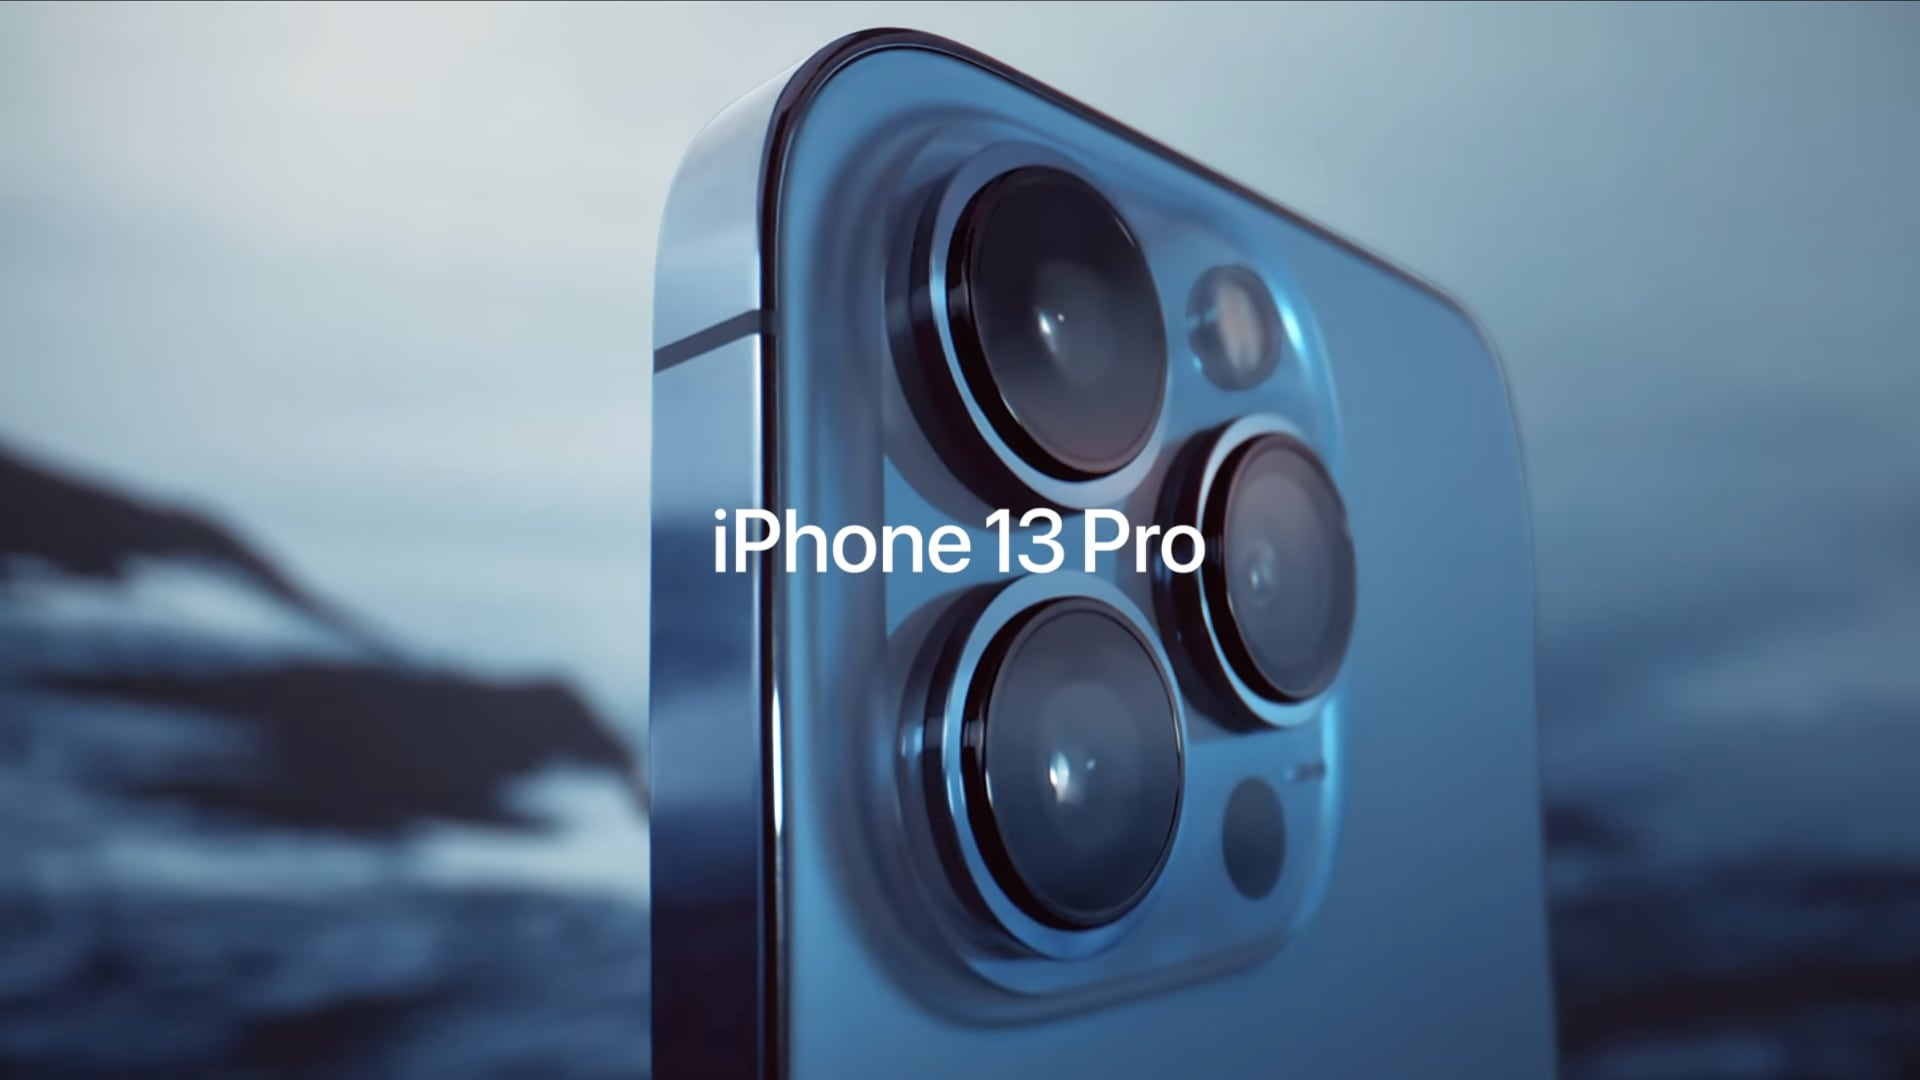 A still image taken from Apple's iPhone 13 Pro introduction video on YouTube, showing a closeup of the three cameras on the back.